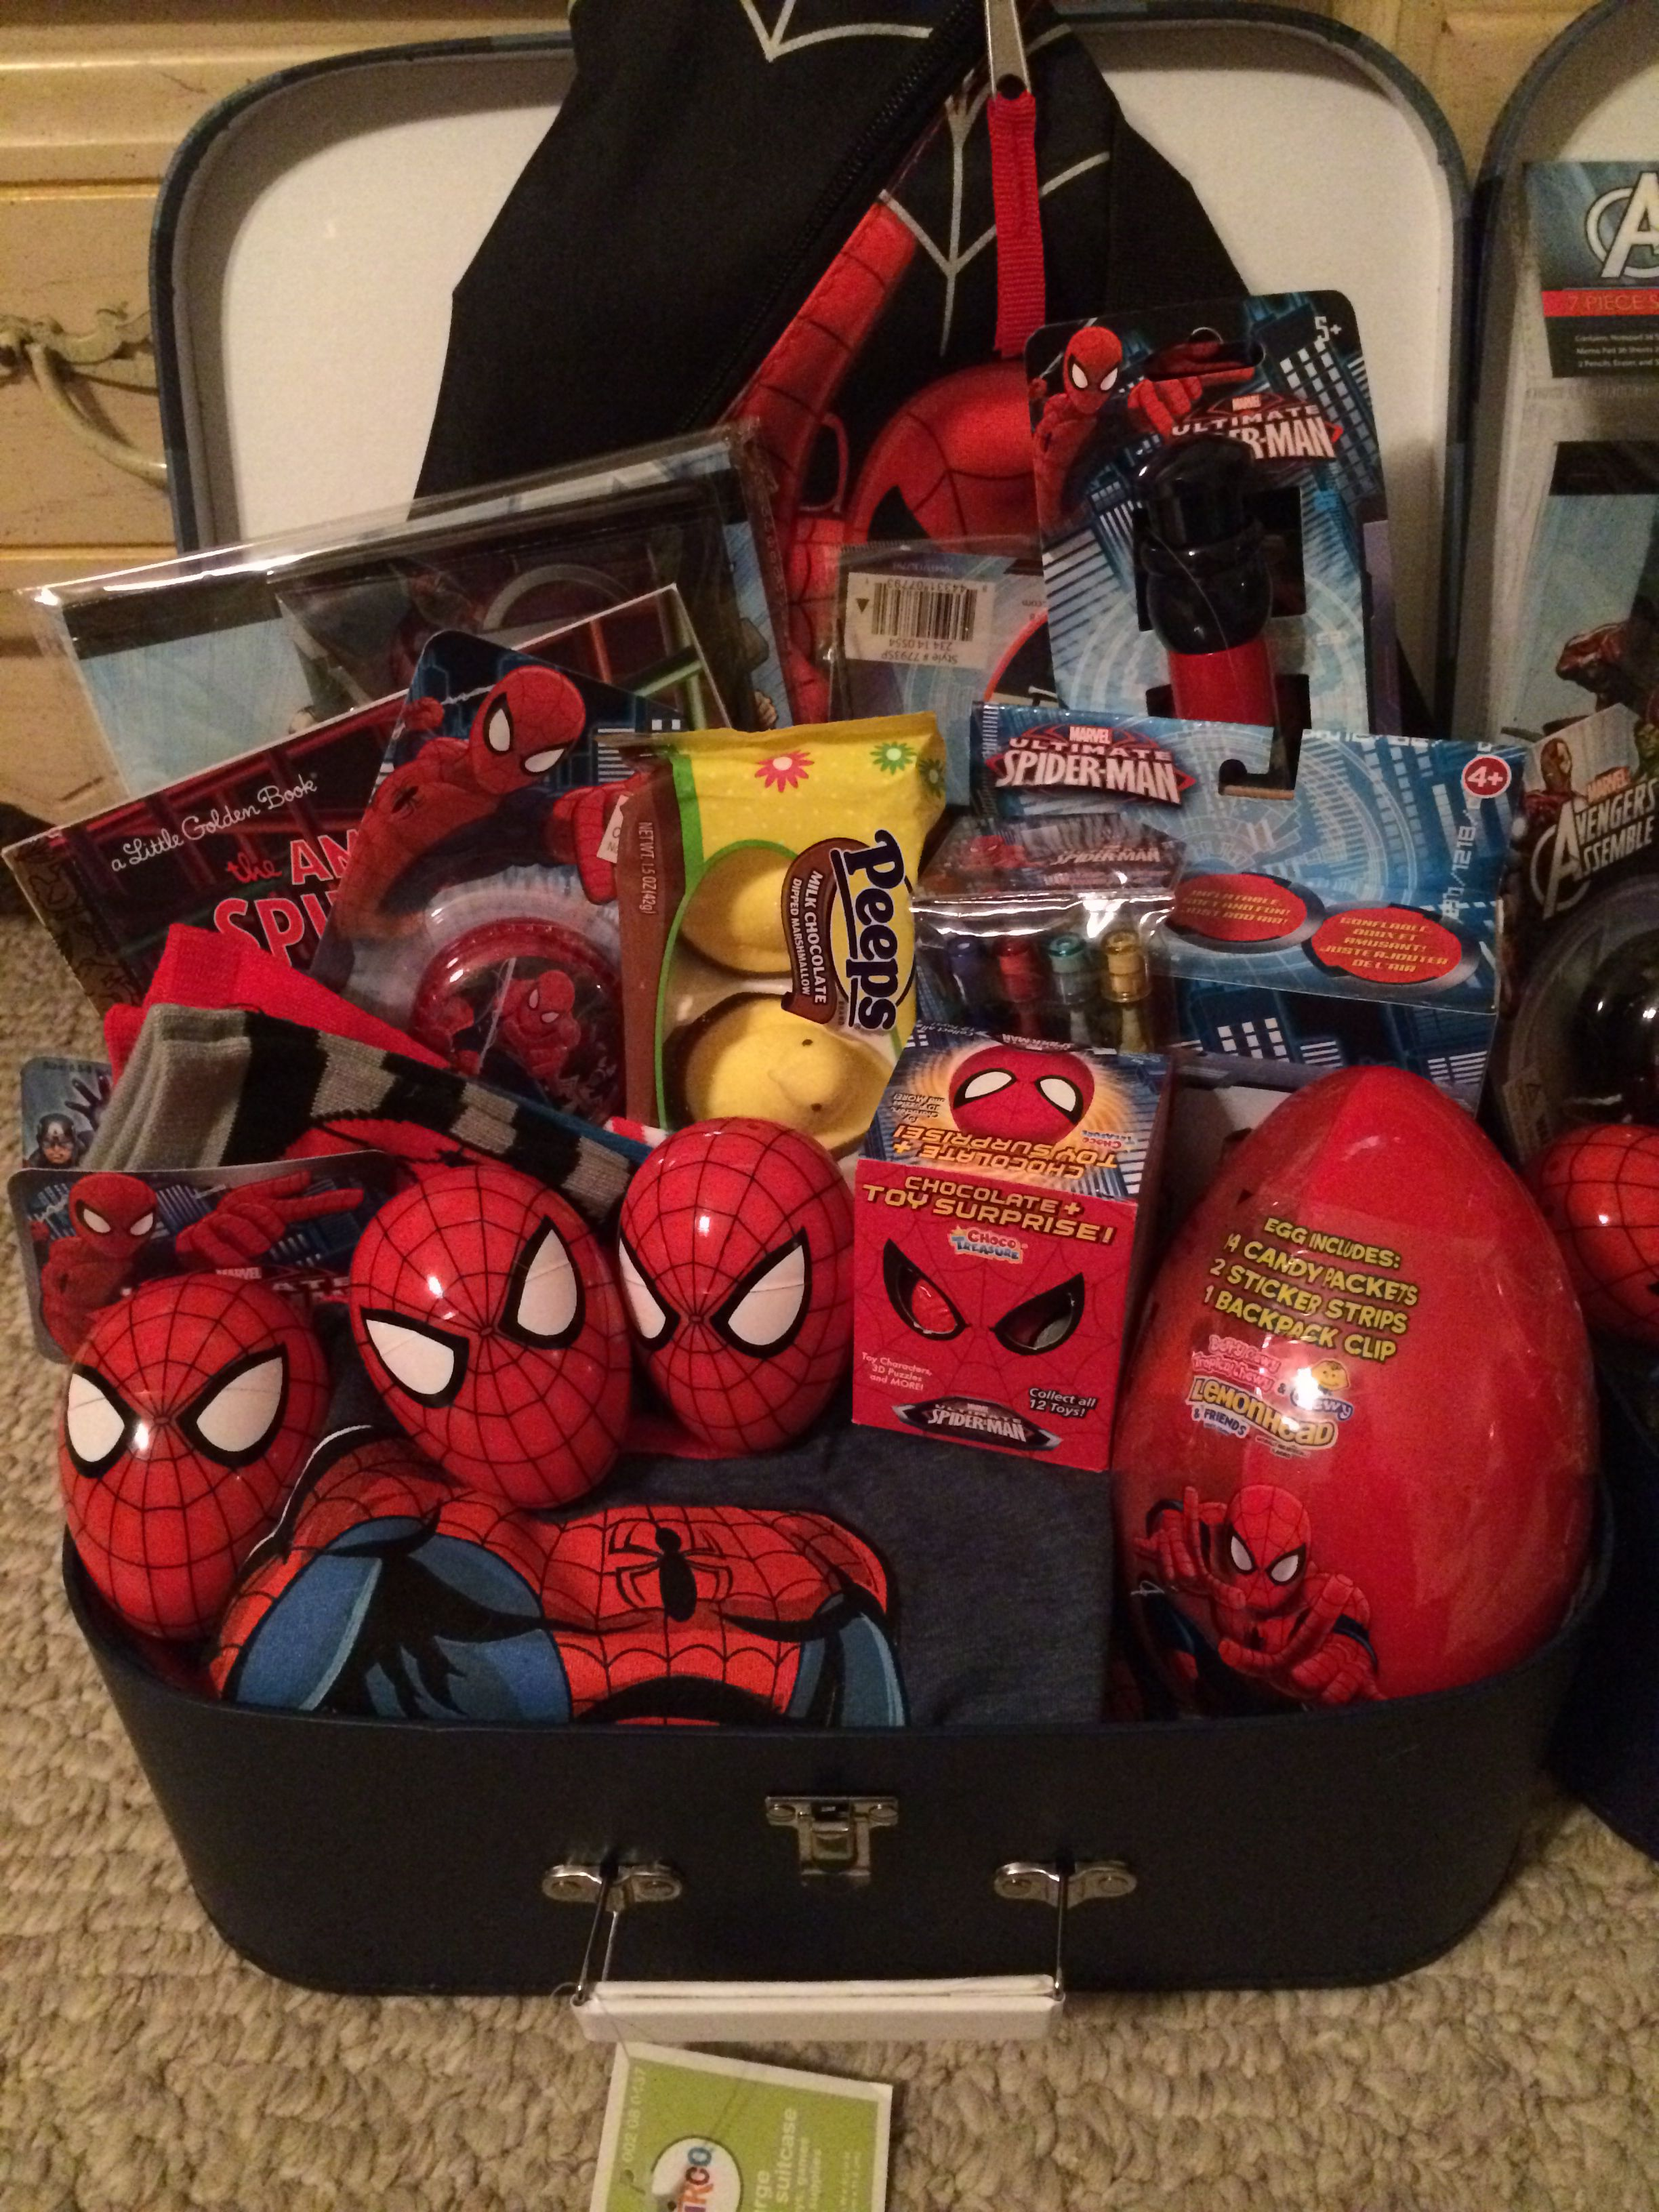 Spider man themed easter basket for my godson 2014 stamati spider man themed easter basket for my godson 2014 negle Choice Image